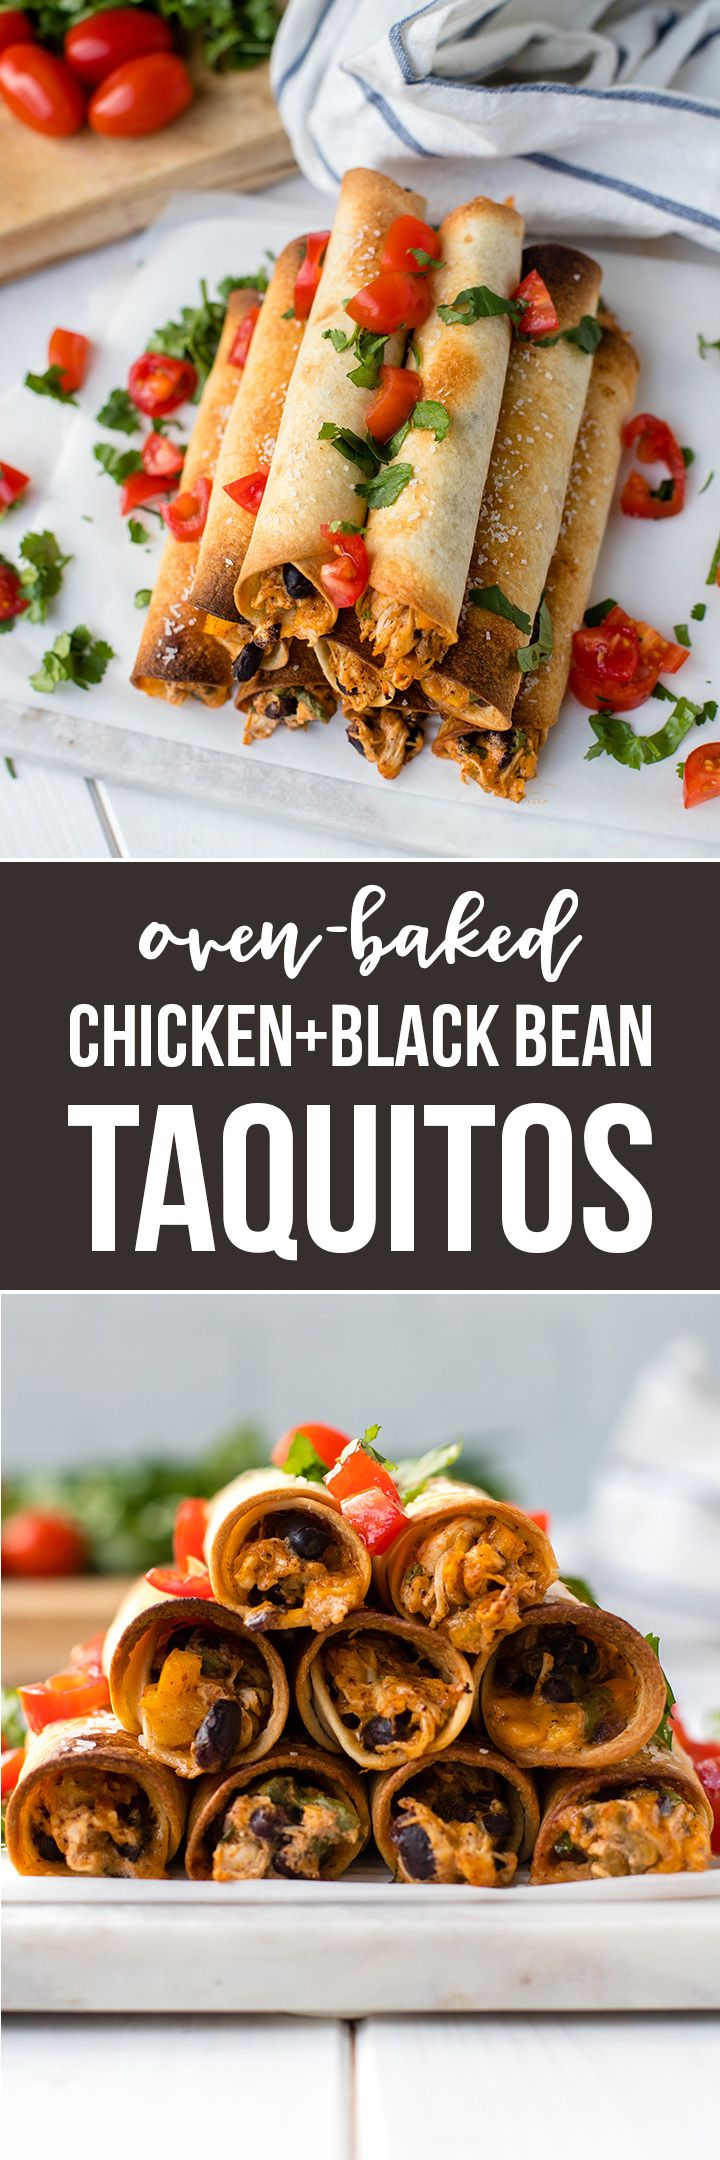 Oven-baked chicken black bean taquitos are perfect for game day, parties, appetizers, or dinner - easy to make-ahead and freezer-friendly! #texmex #taquitos #gamedaysnacks